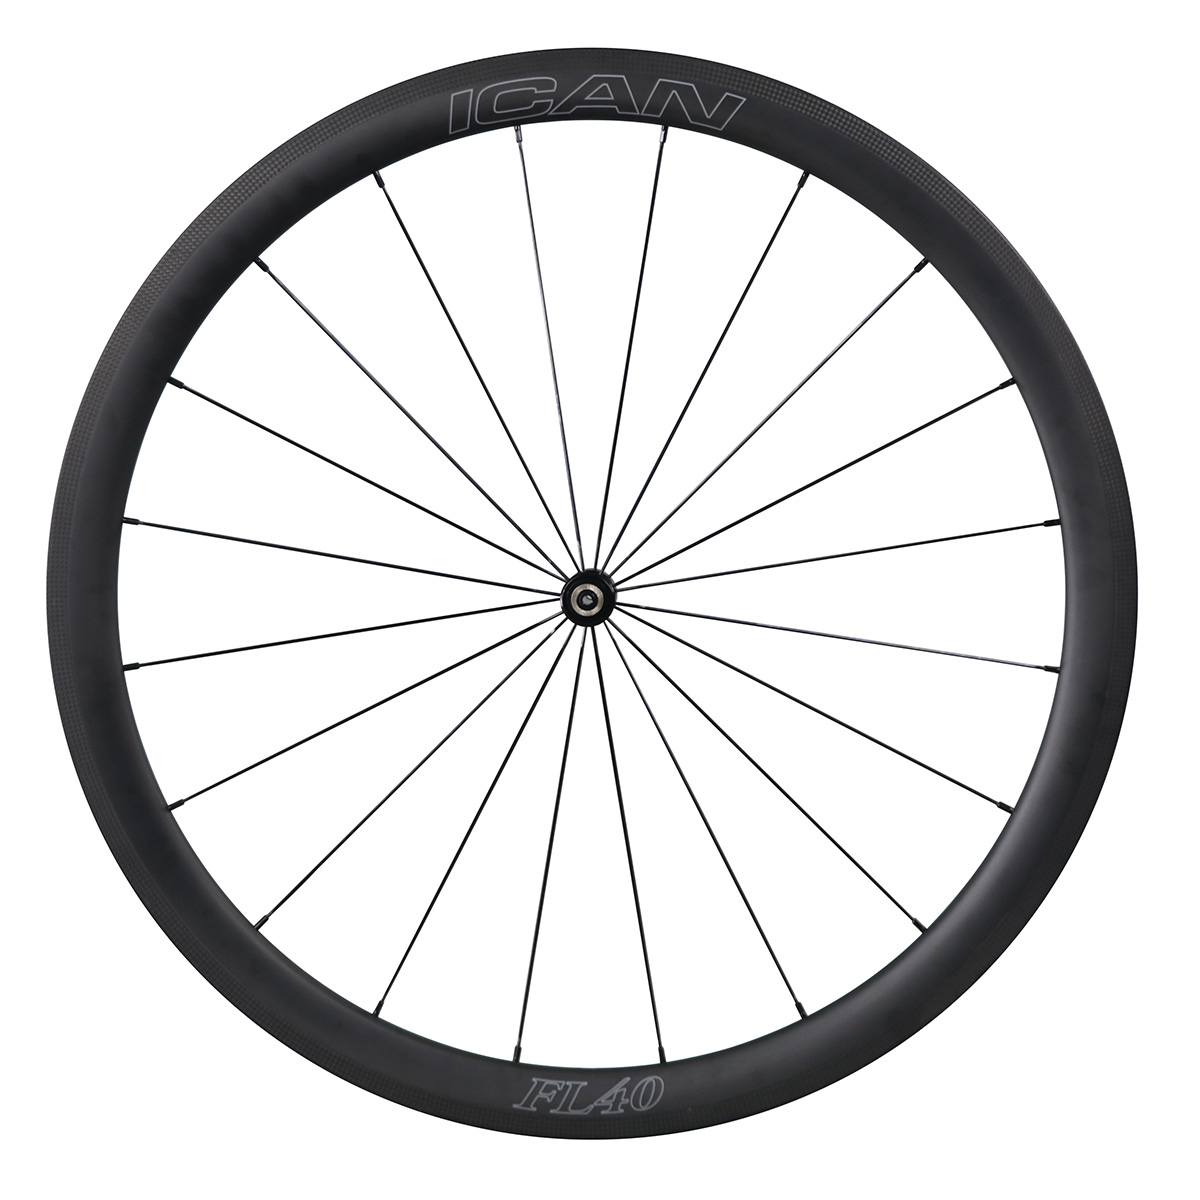 ICAN-Carbon-Fiber-Road-Bike-Wheelset-40mm-Clincher-Tubeless-Ready thumbnail 4